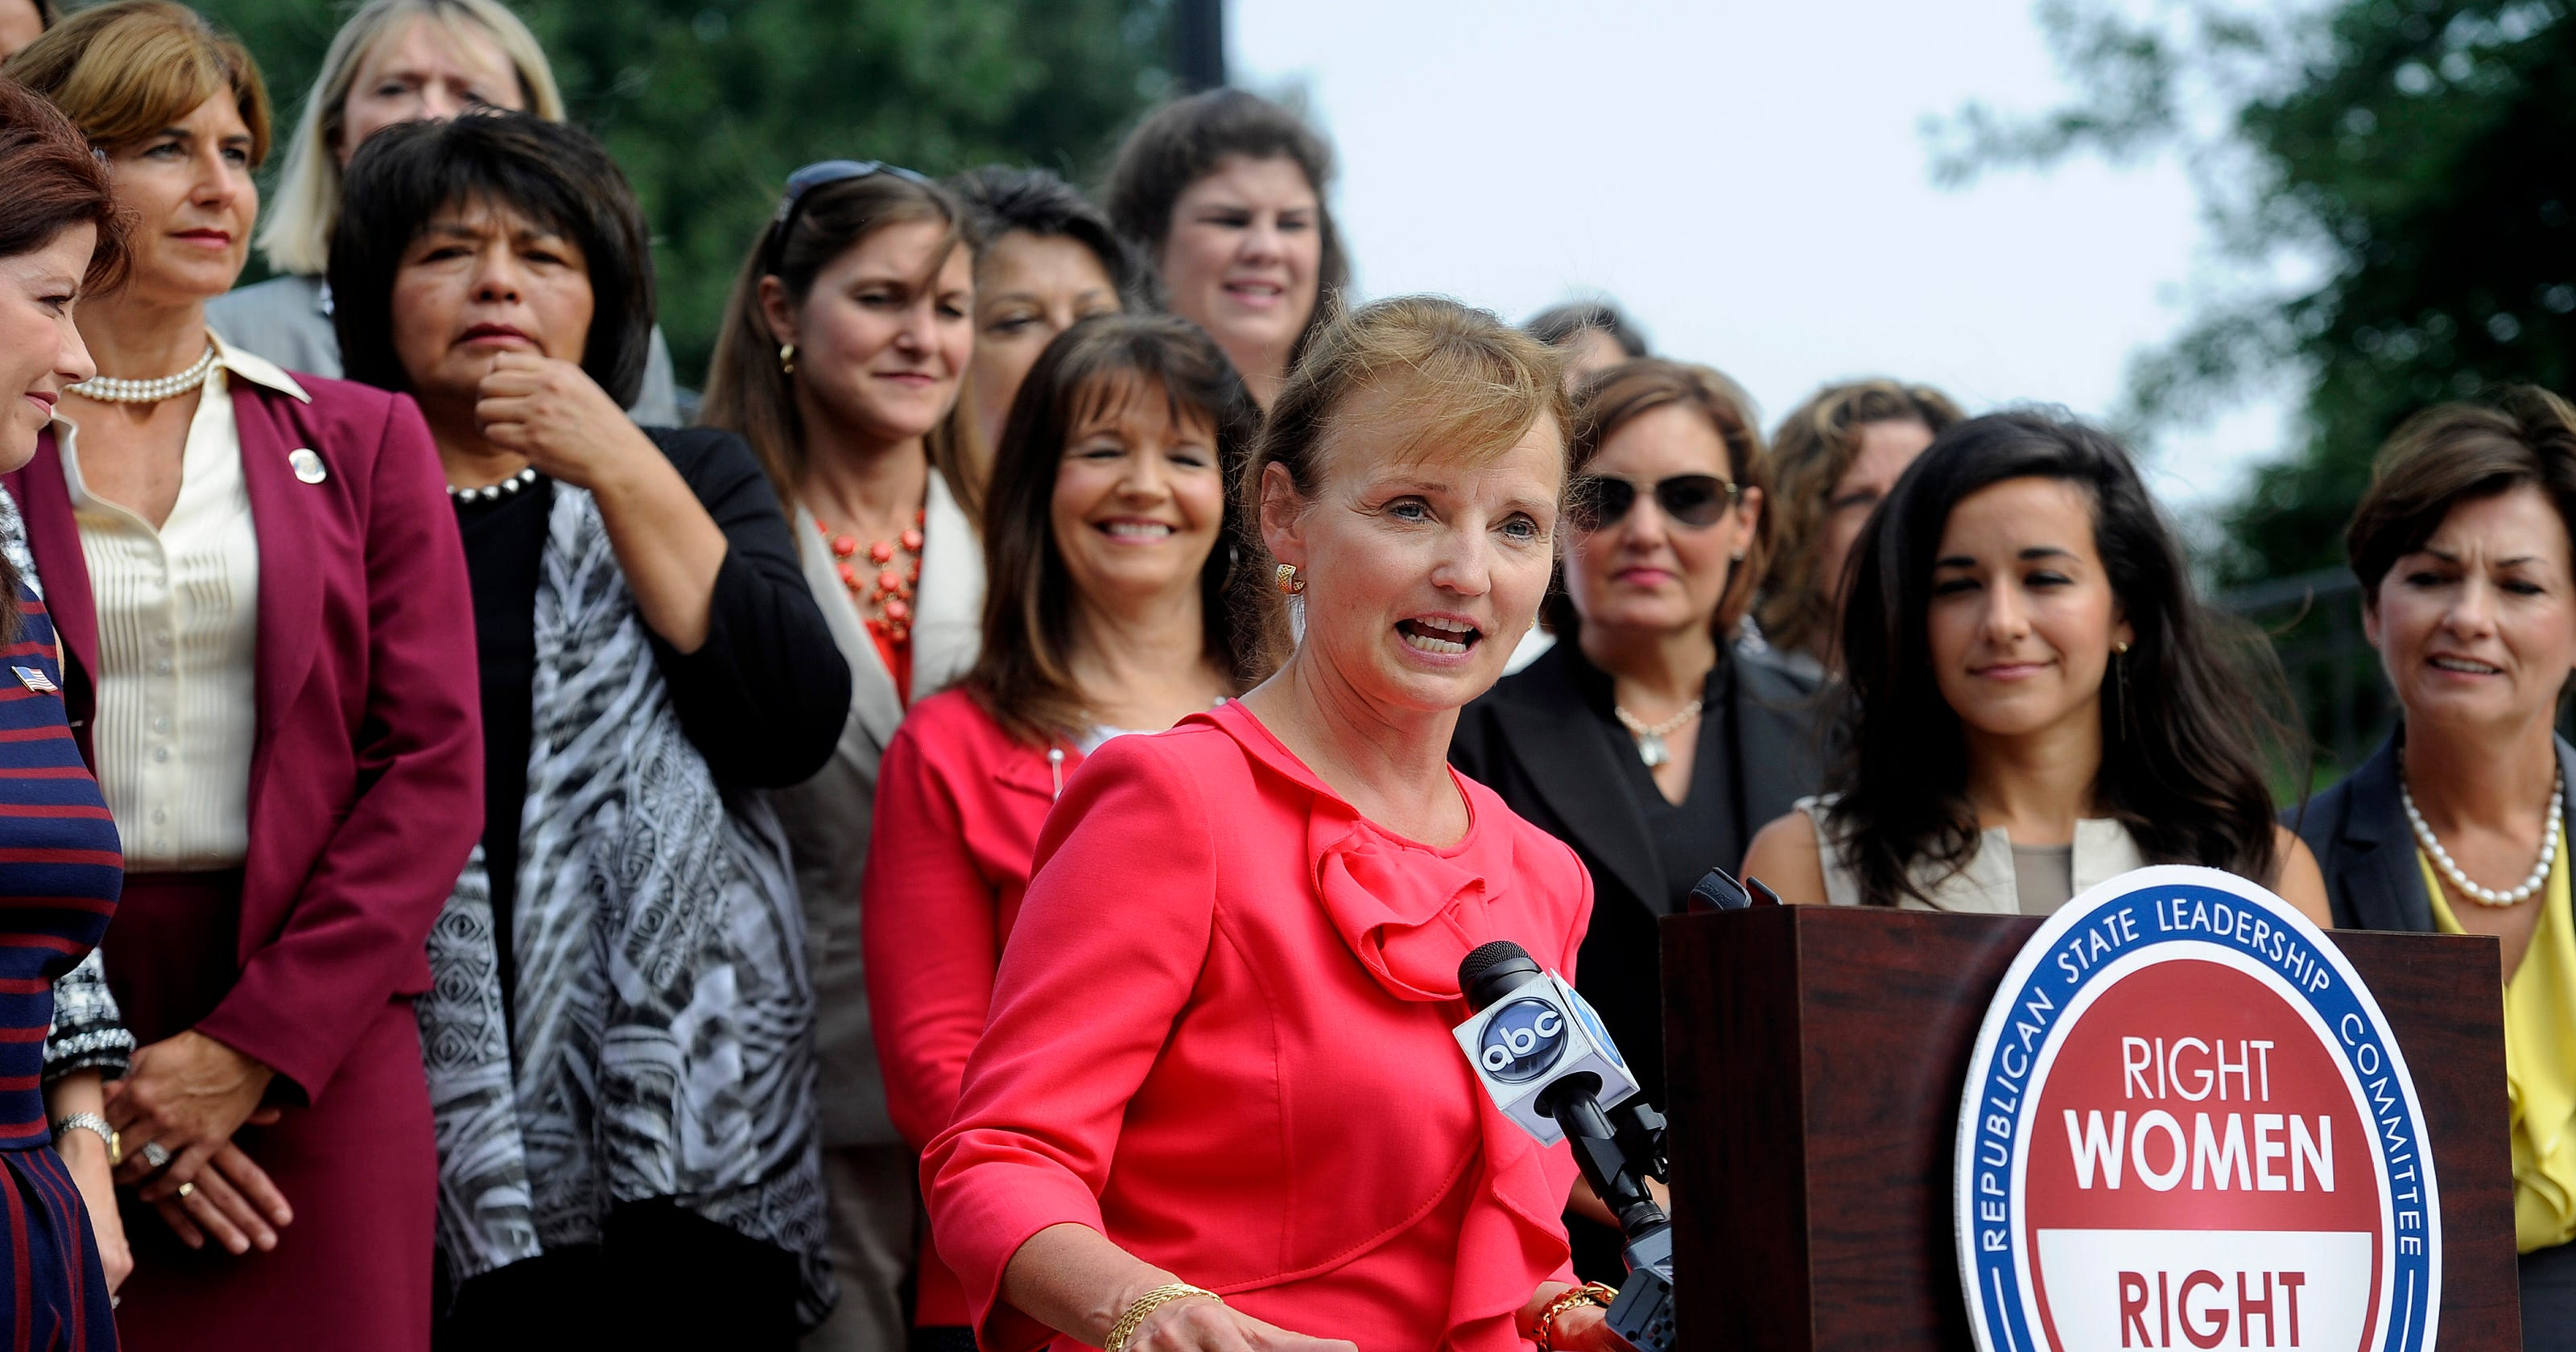 GOP group aims to recruit more women to run for office